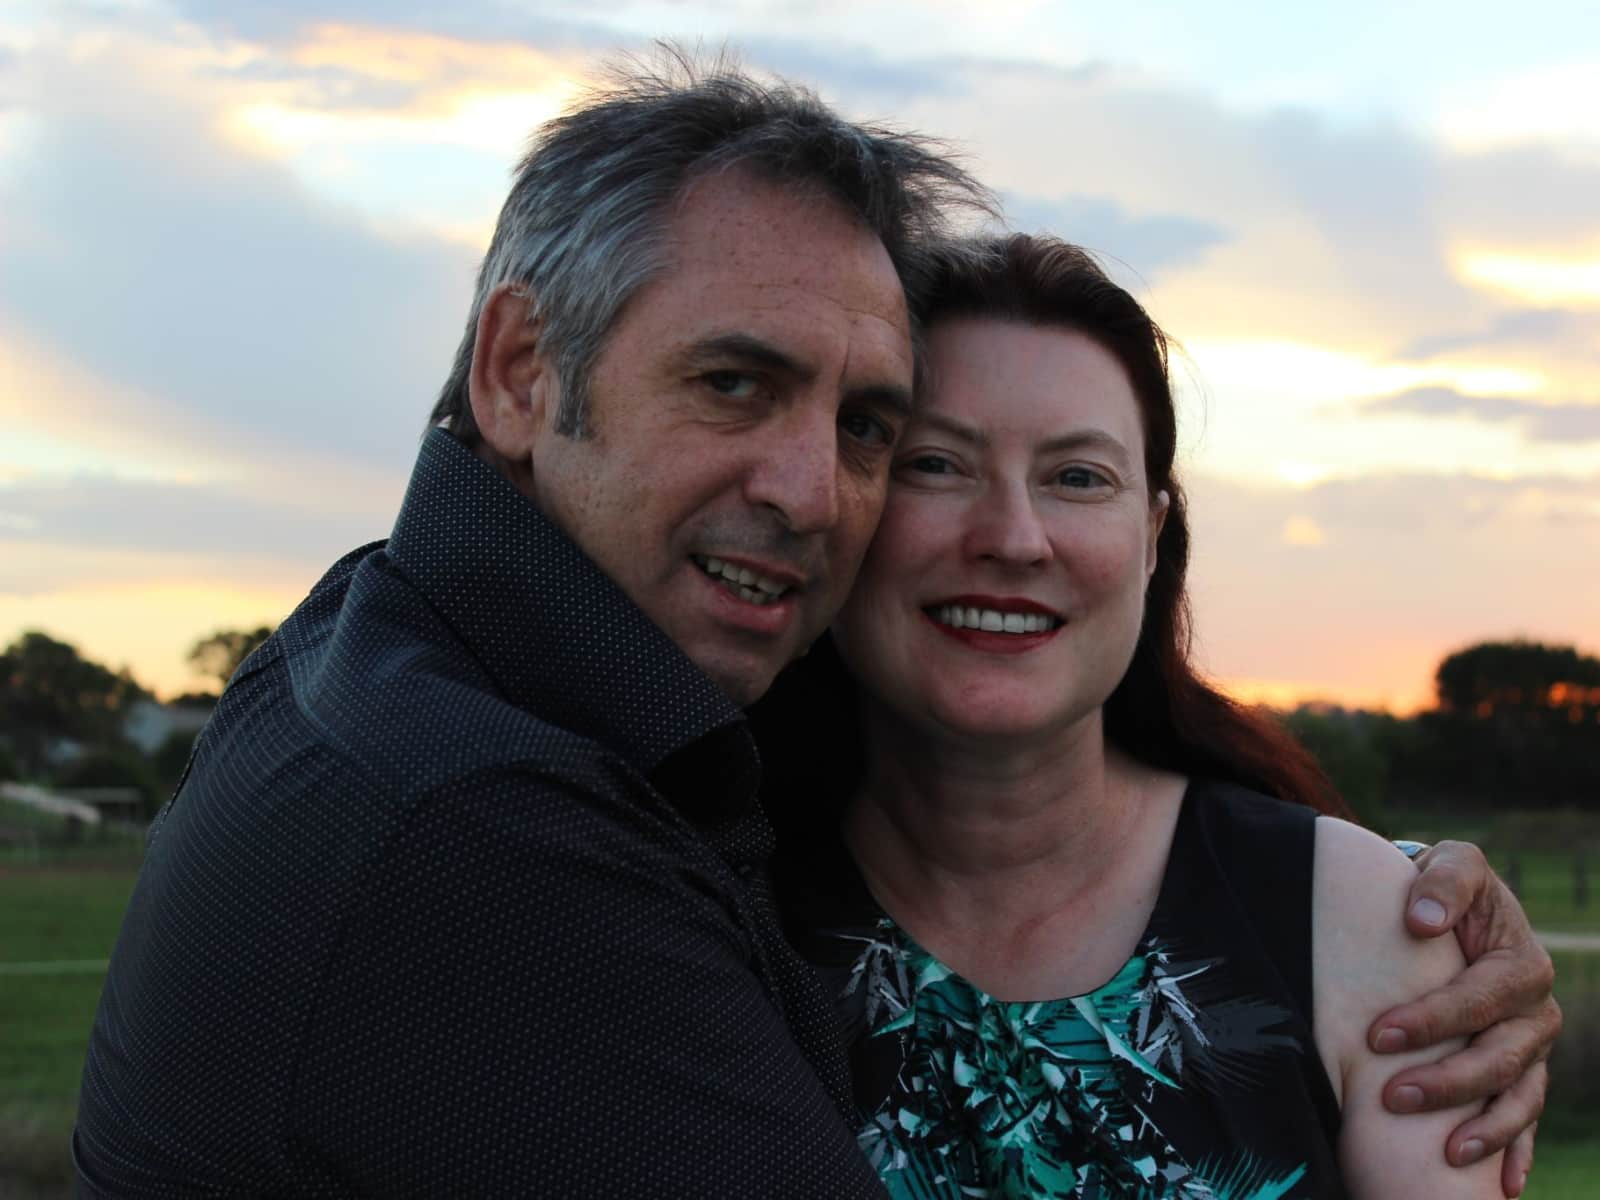 Vrede & Craig from Sydney, New South Wales, Australia